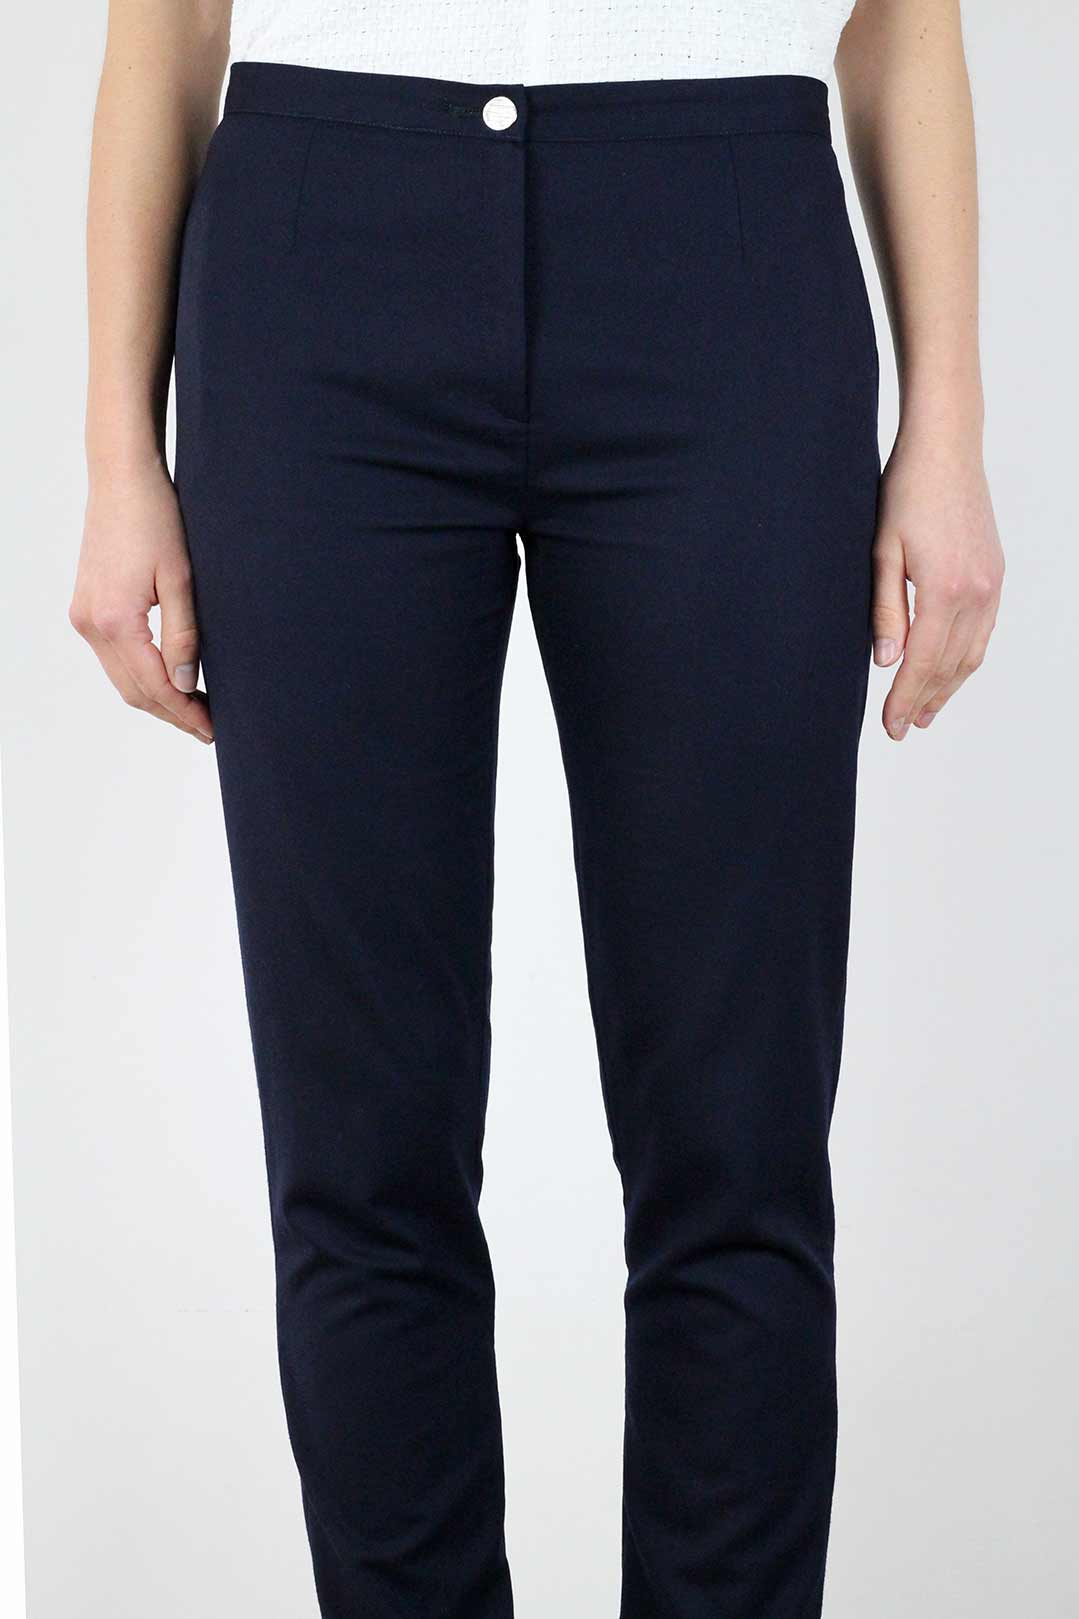 France droit Made en bleu in laine ATODE Pantalon femme marine FaqRwOxS8